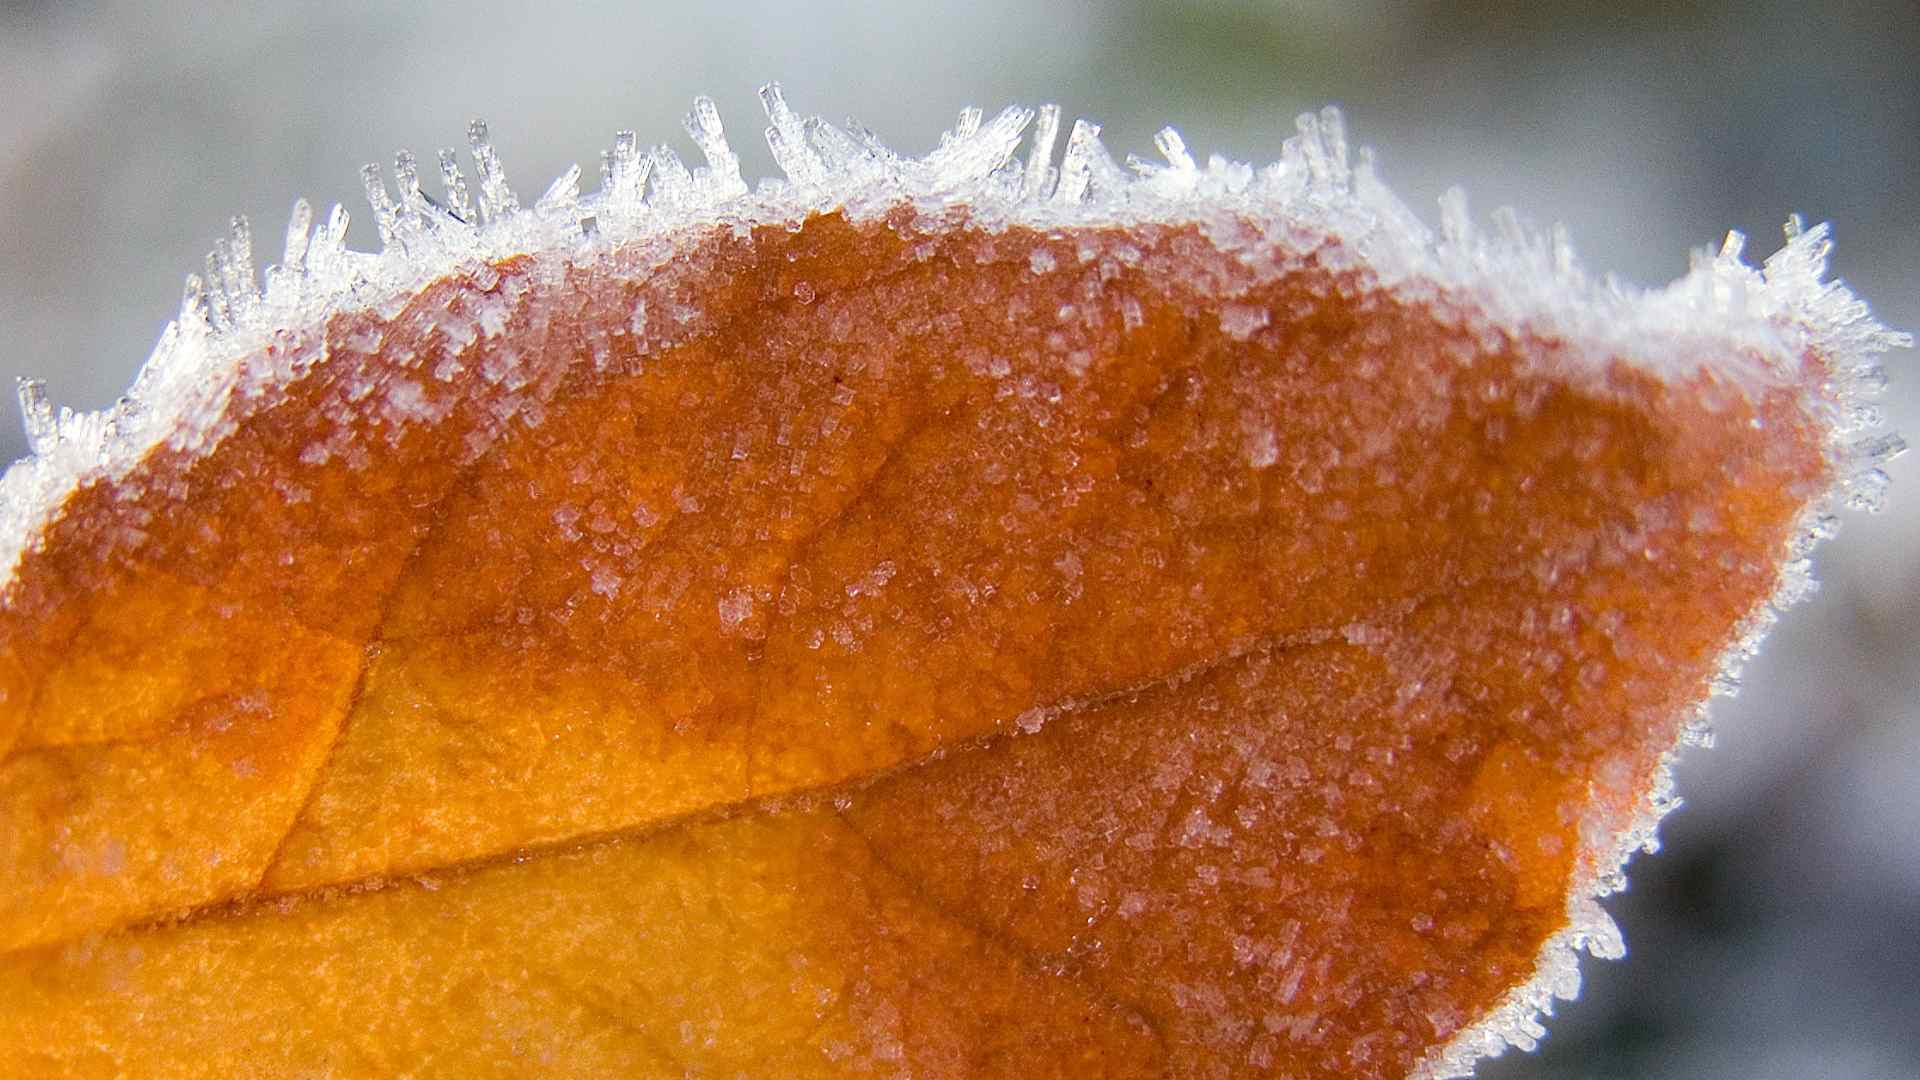 Free autumn wallpaper featuring a frosted orange leaf.